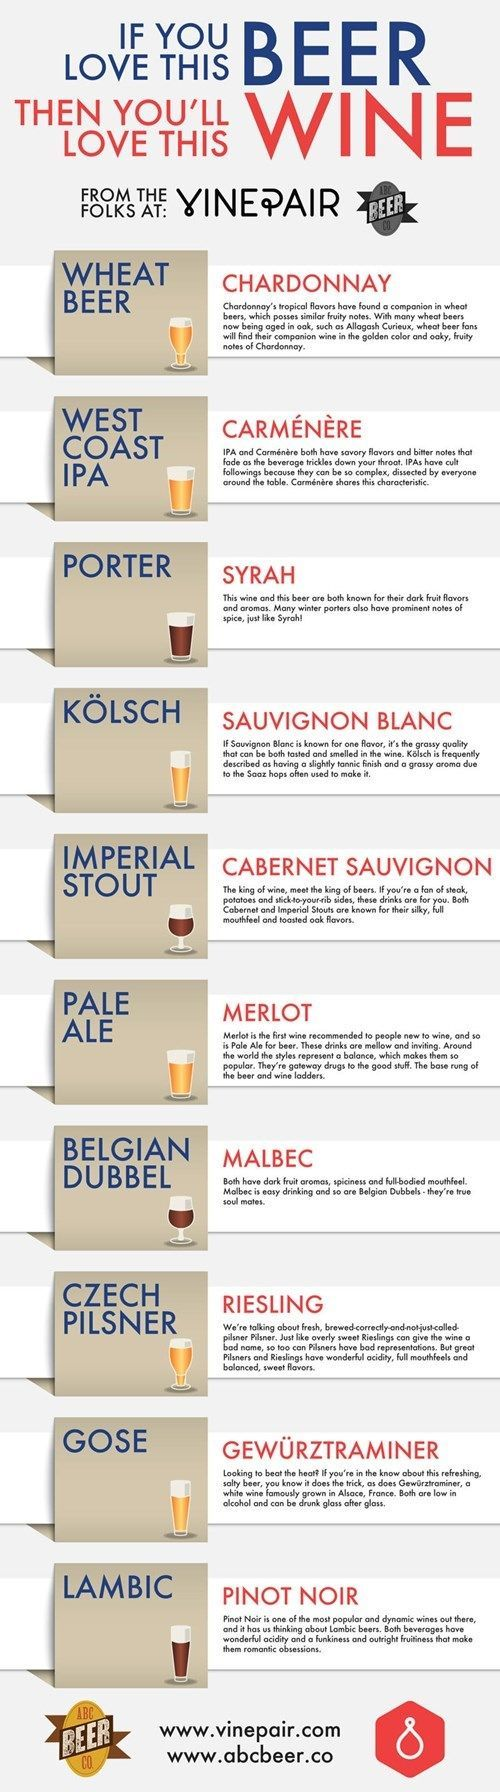 Choosing wines according to the beers you like {wineglasswriter.com/}